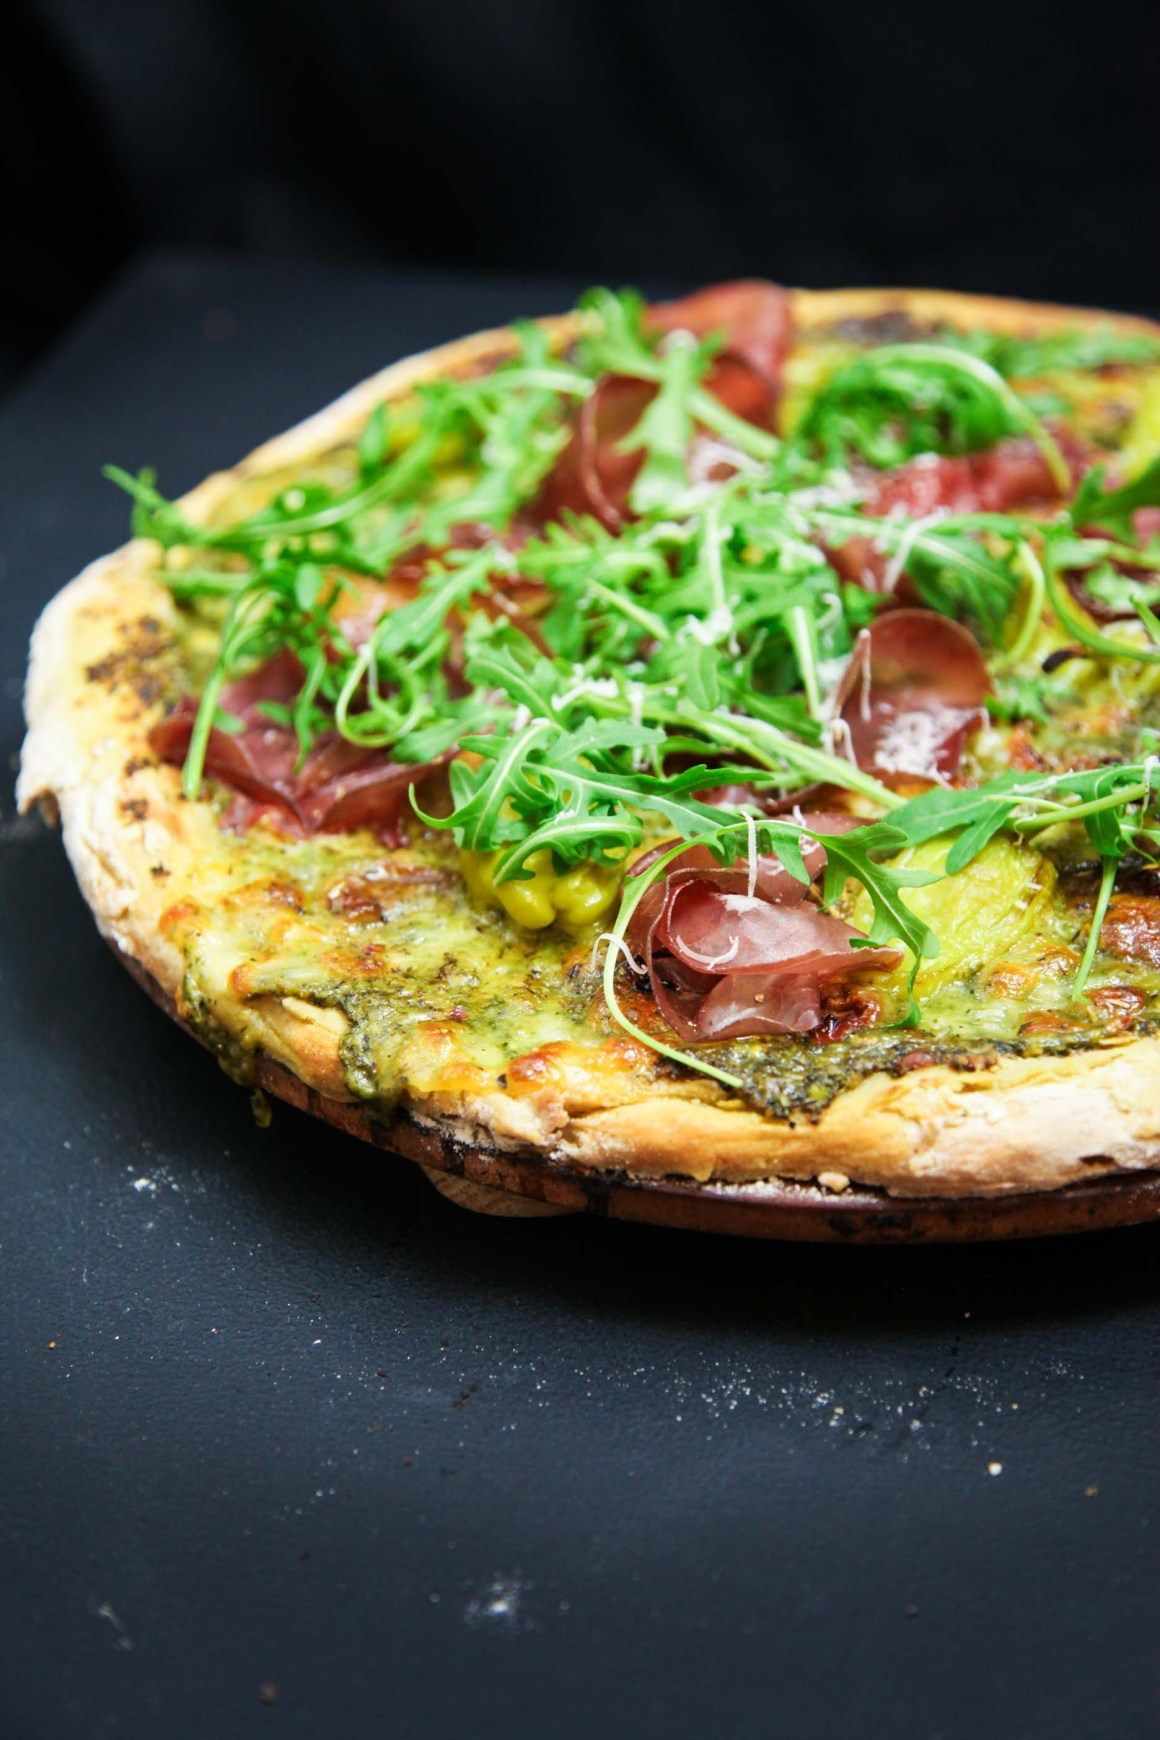 Wild Garlic Pesto Pizza with Bresaola and Arugula   Berries and Spice